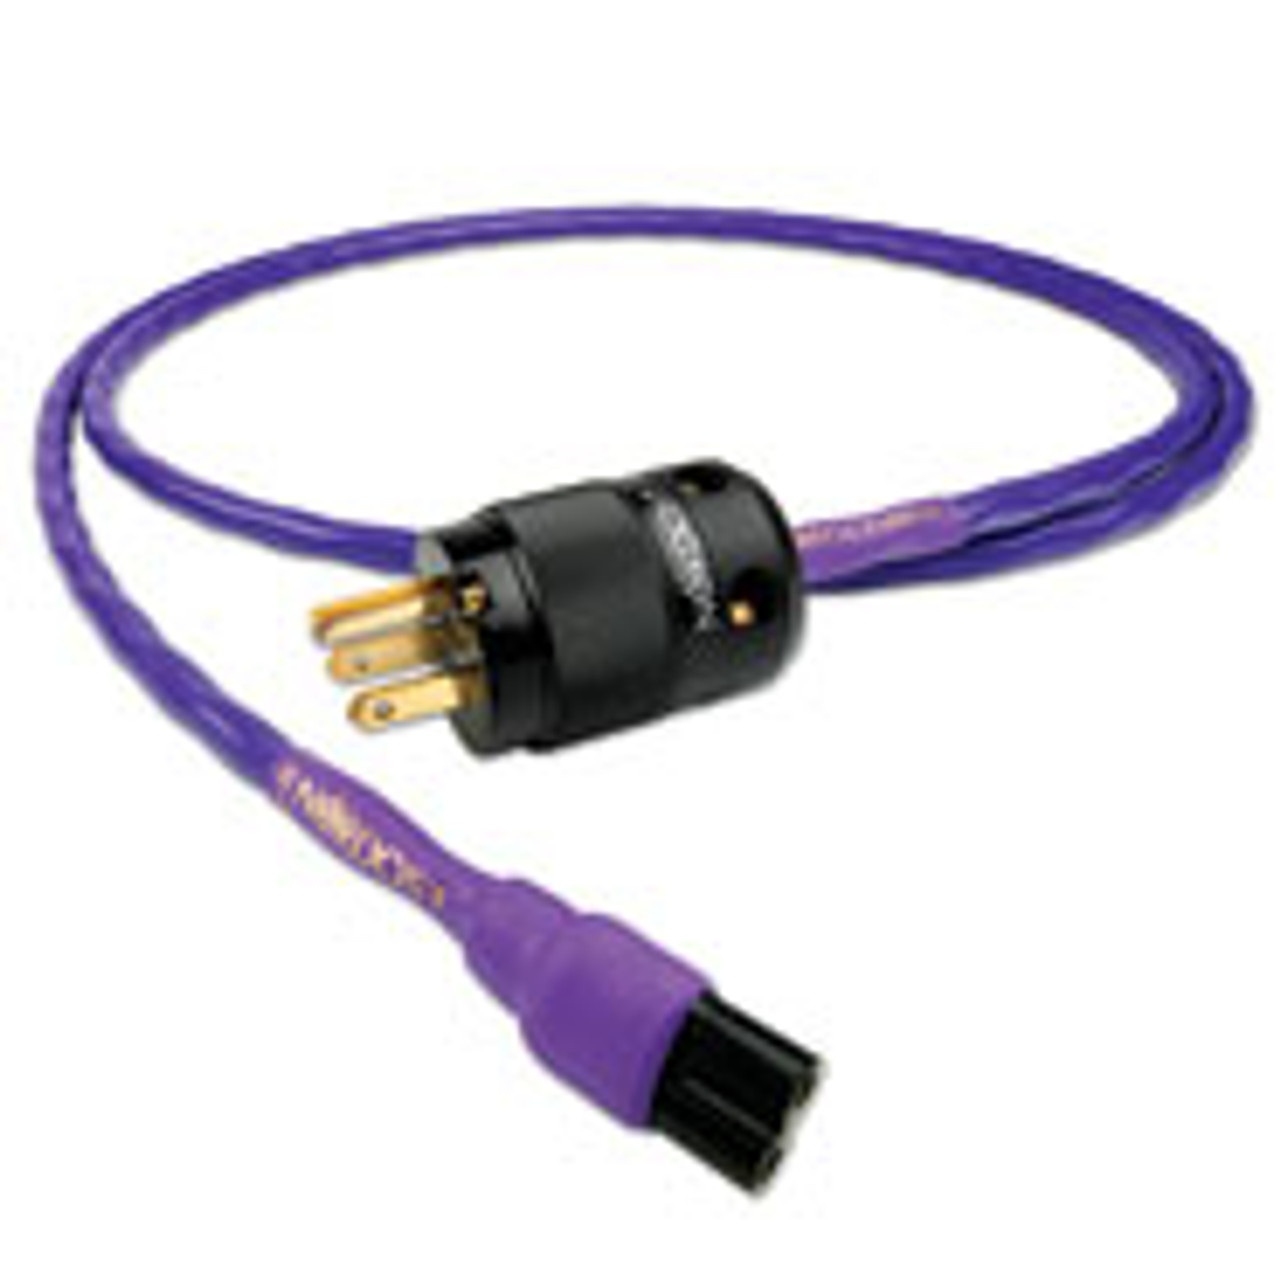 Nordost Purple Flare Figure 8 AC Power Cable 2m